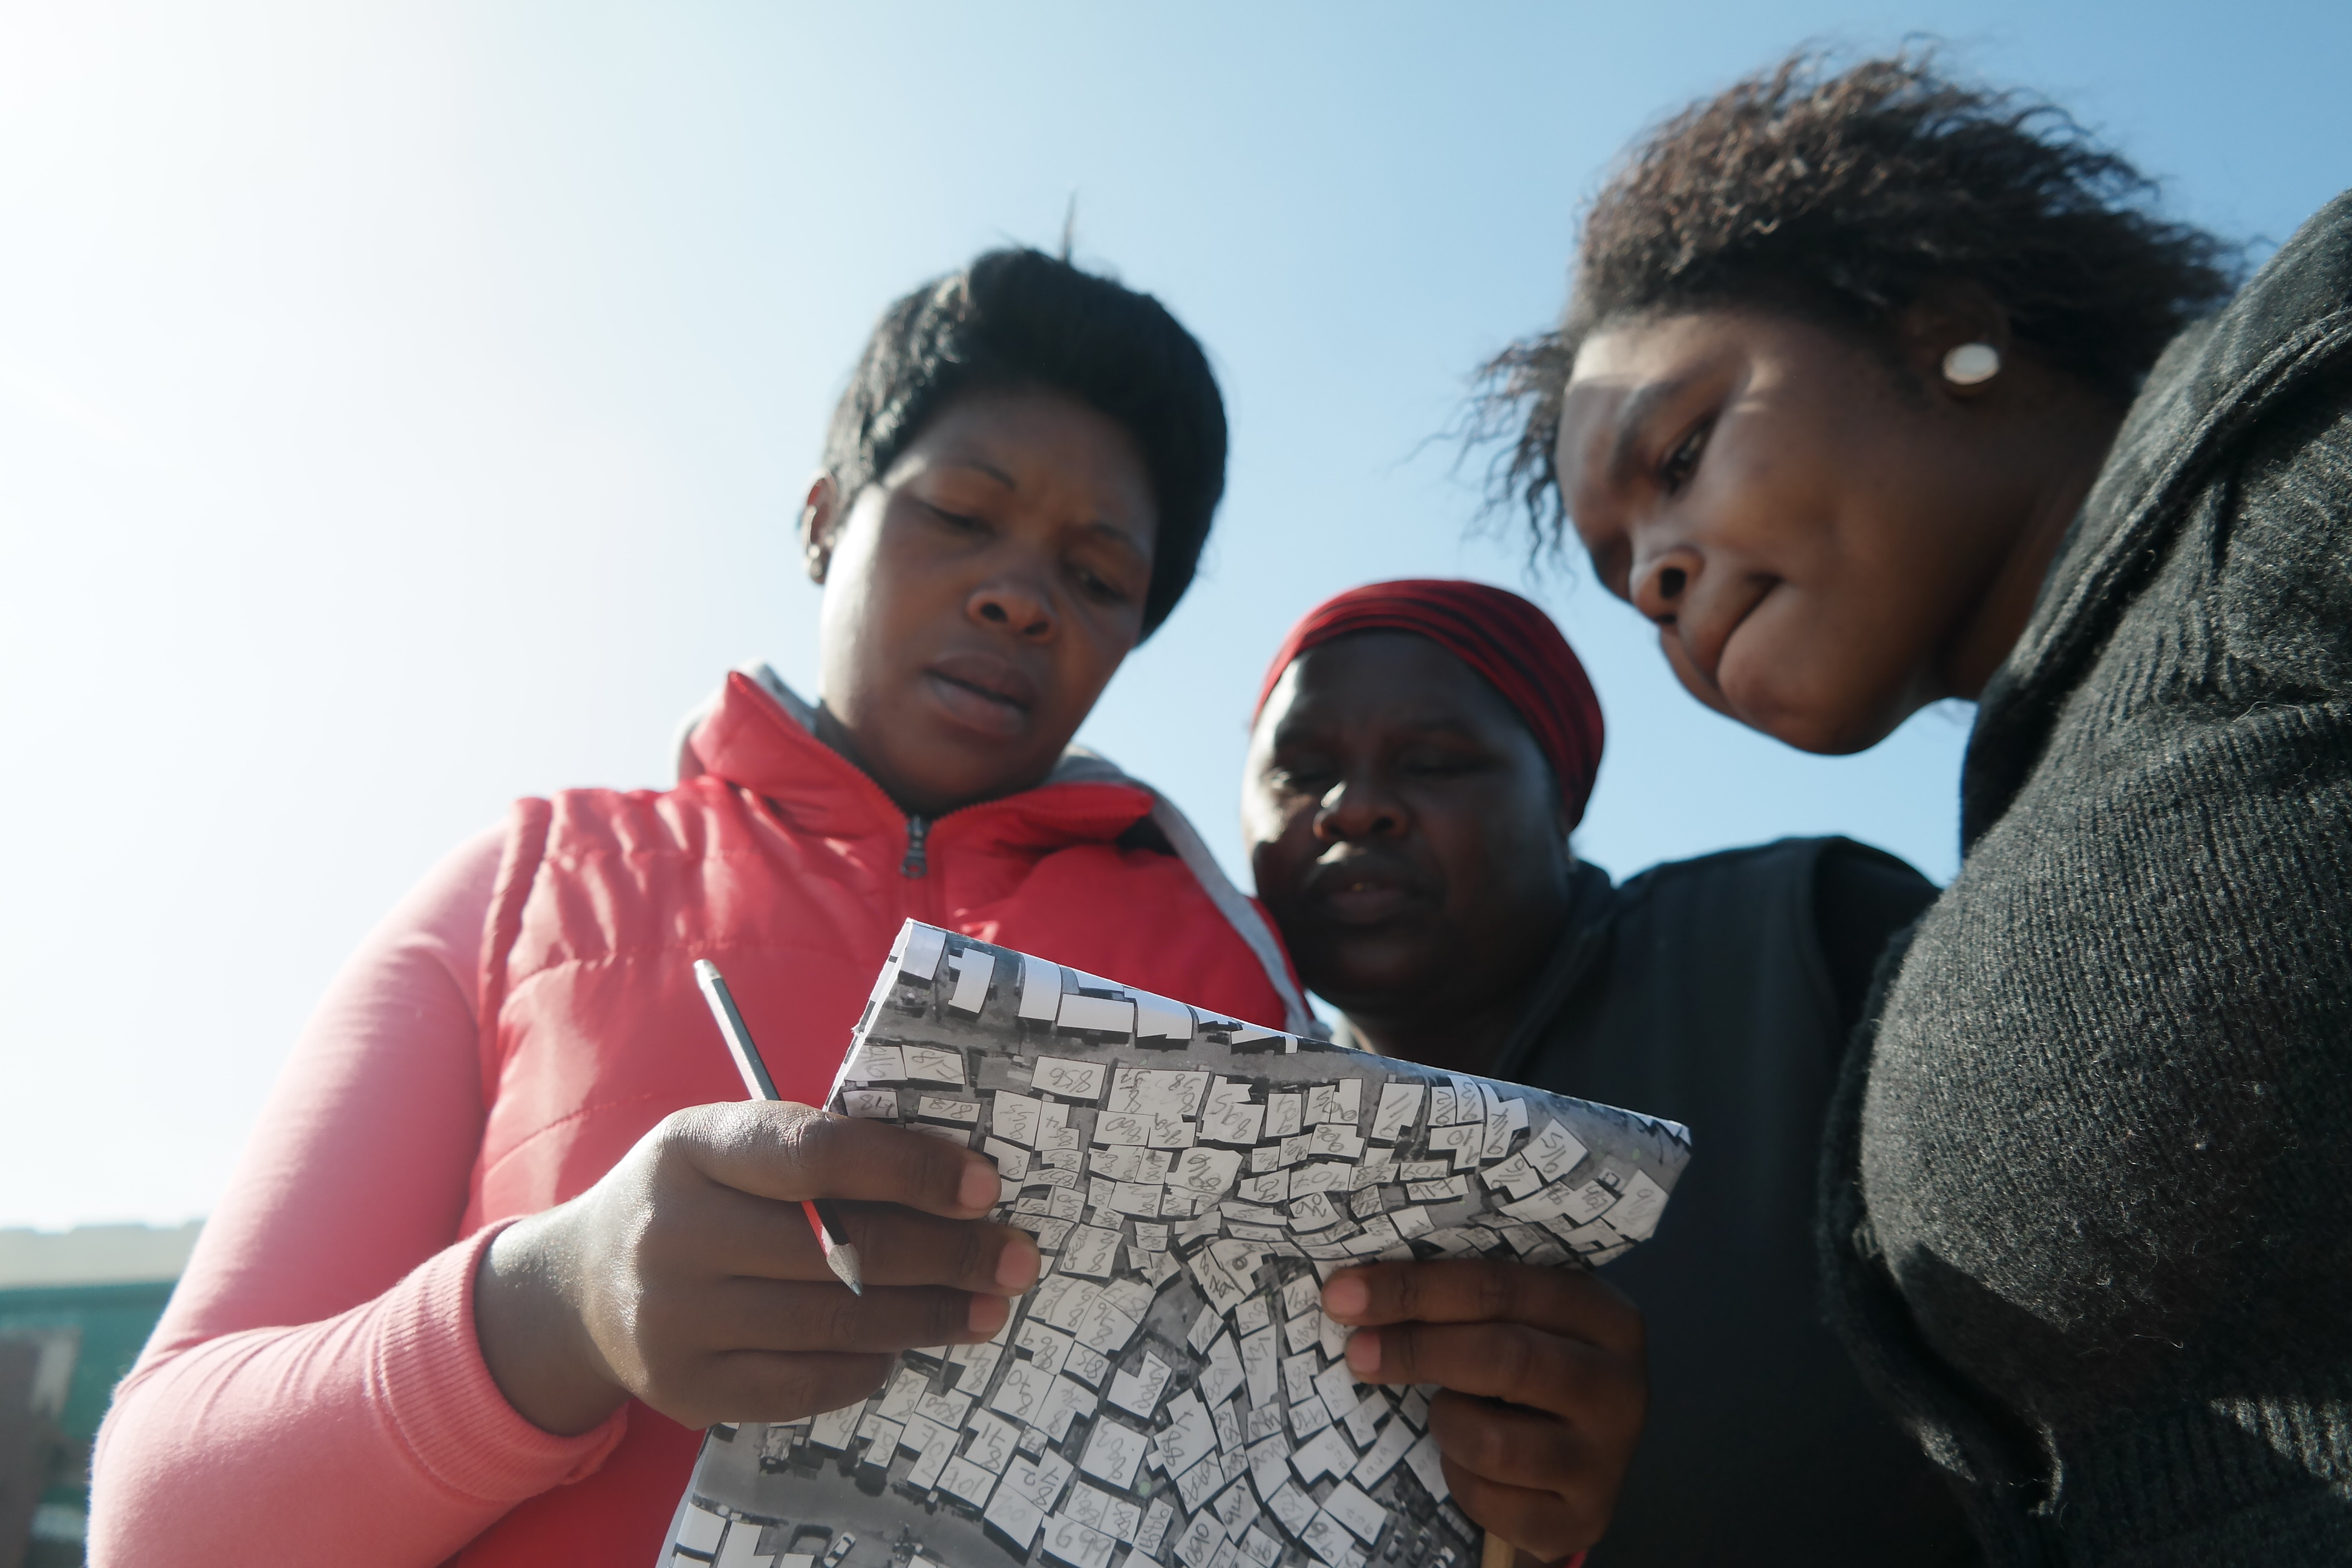 Before setting out to number shacks, the numbering team reviews the settlement layout map.